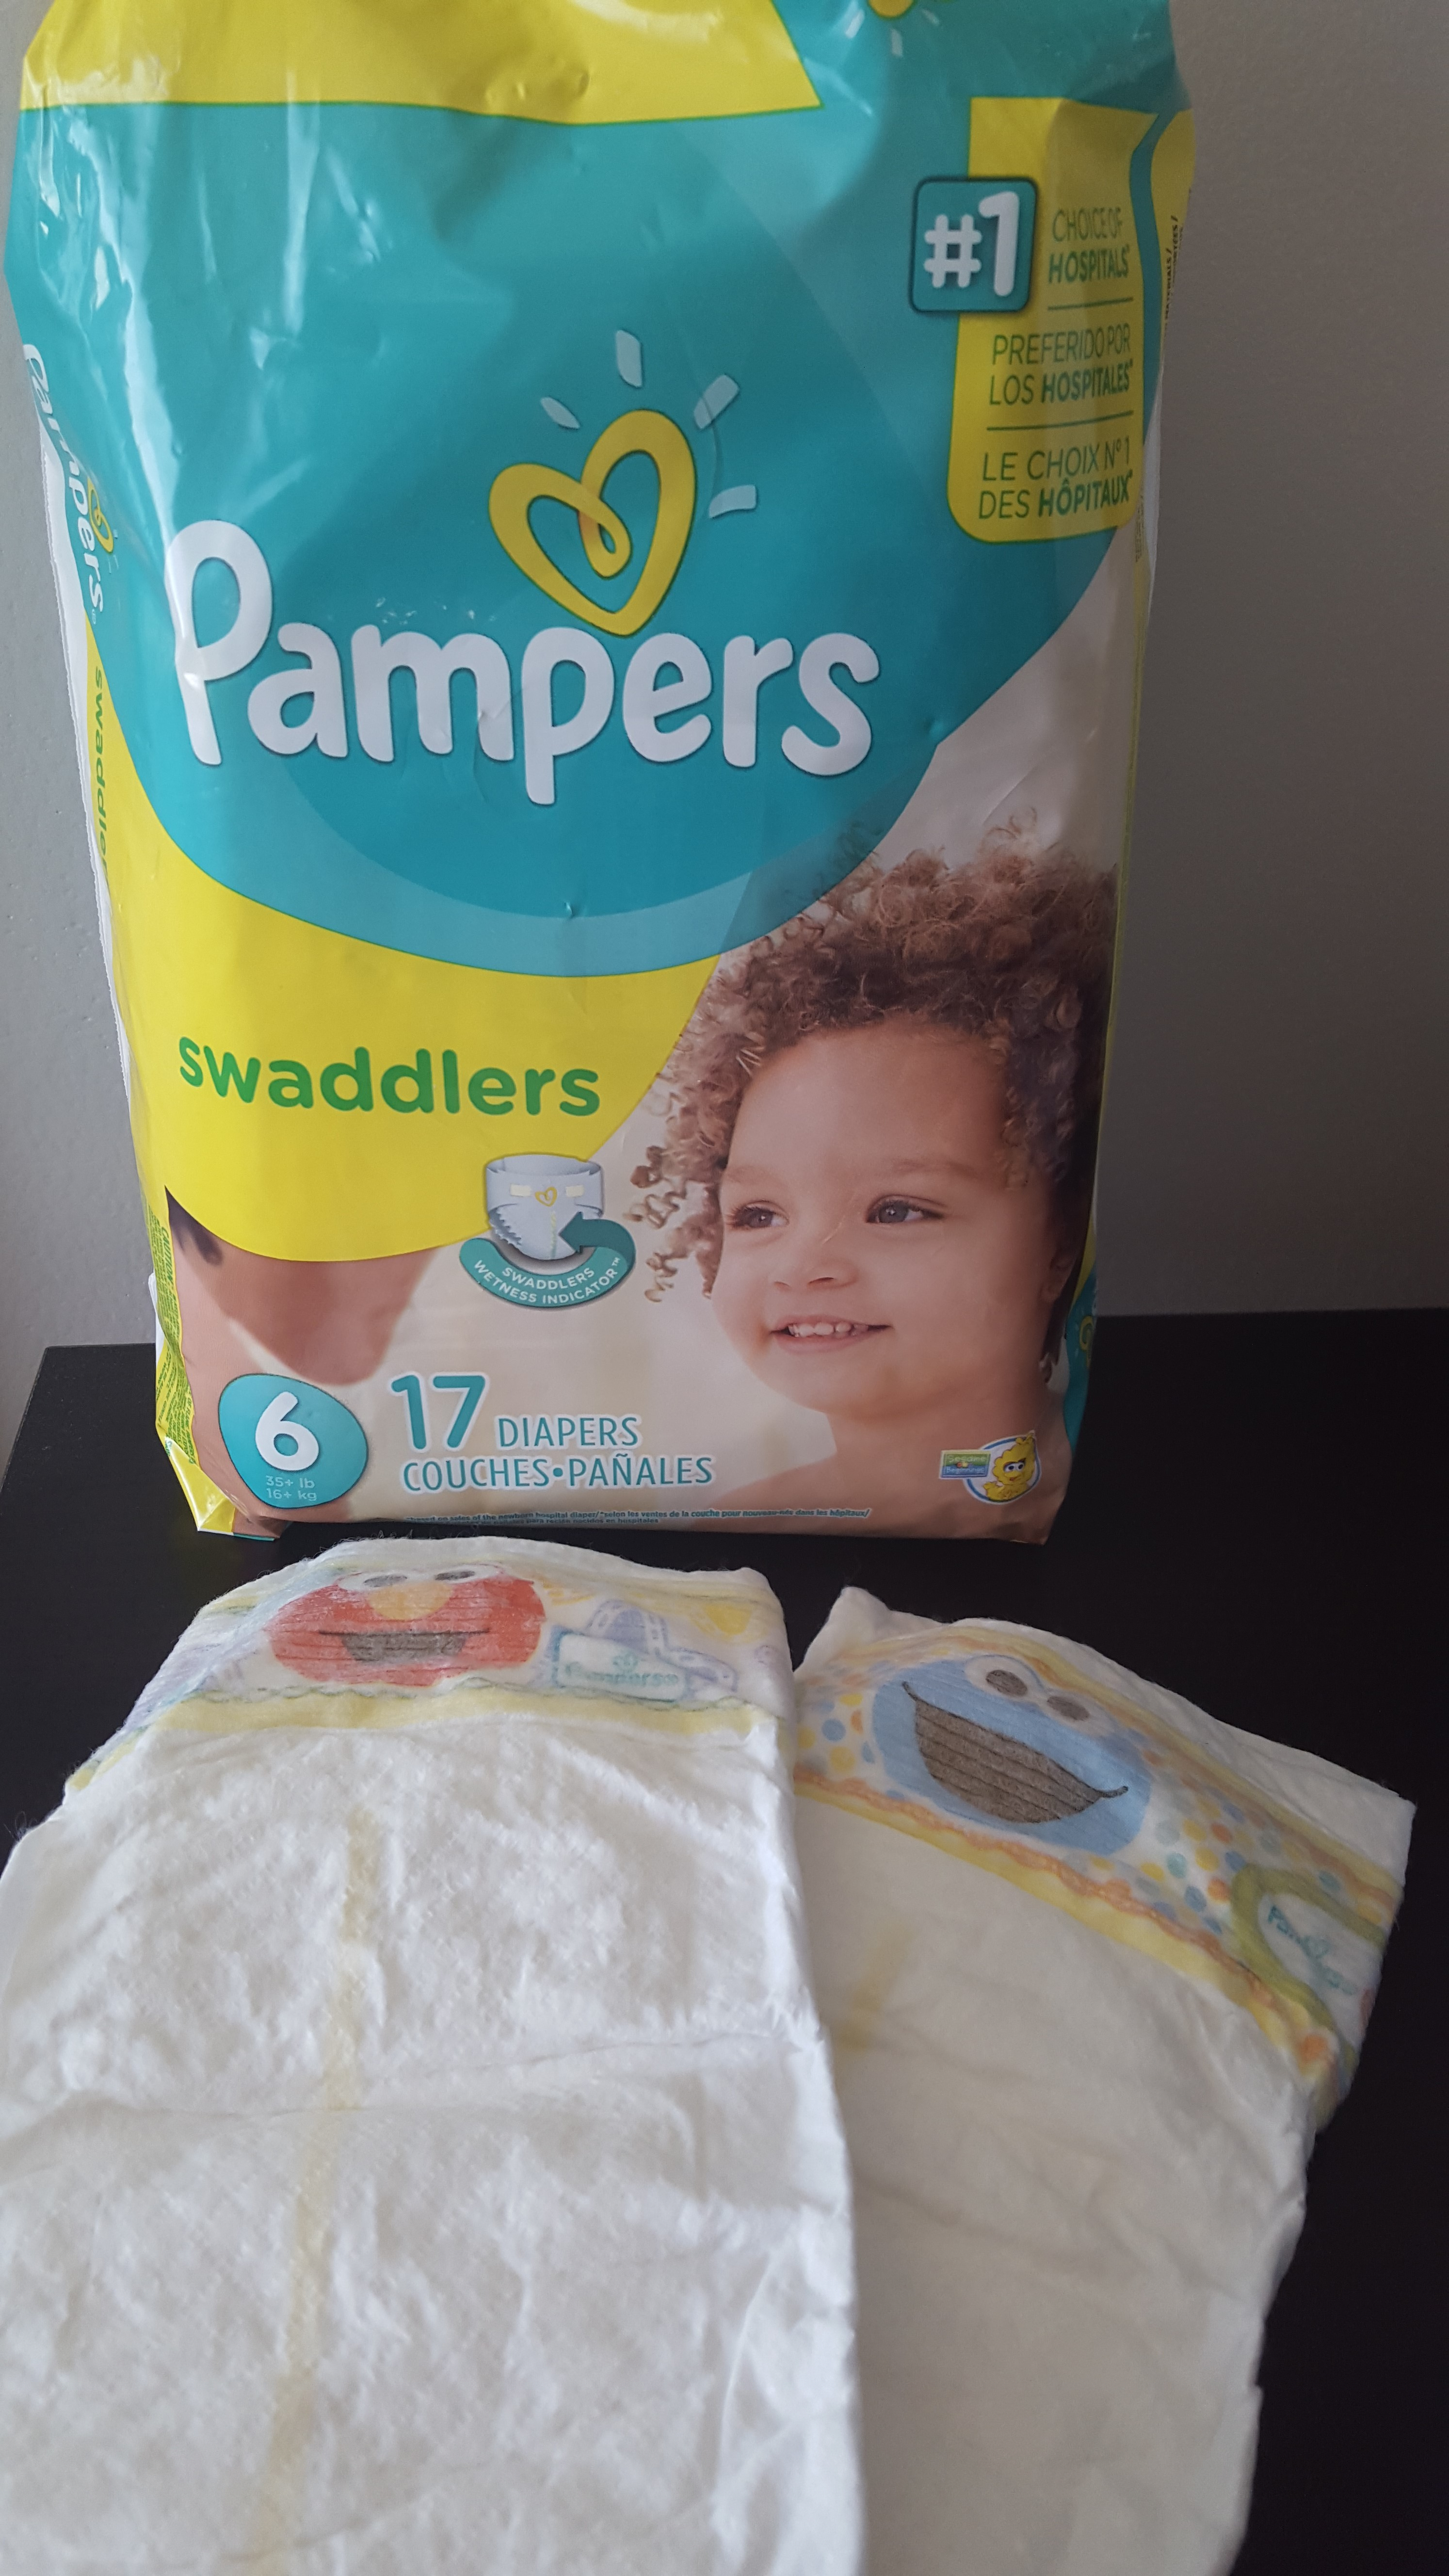 Buy Pampers Swaddlers at Walmart & Help the Children's Miracle Network Hospitals + $25 Walmart Gift Card Giveaway